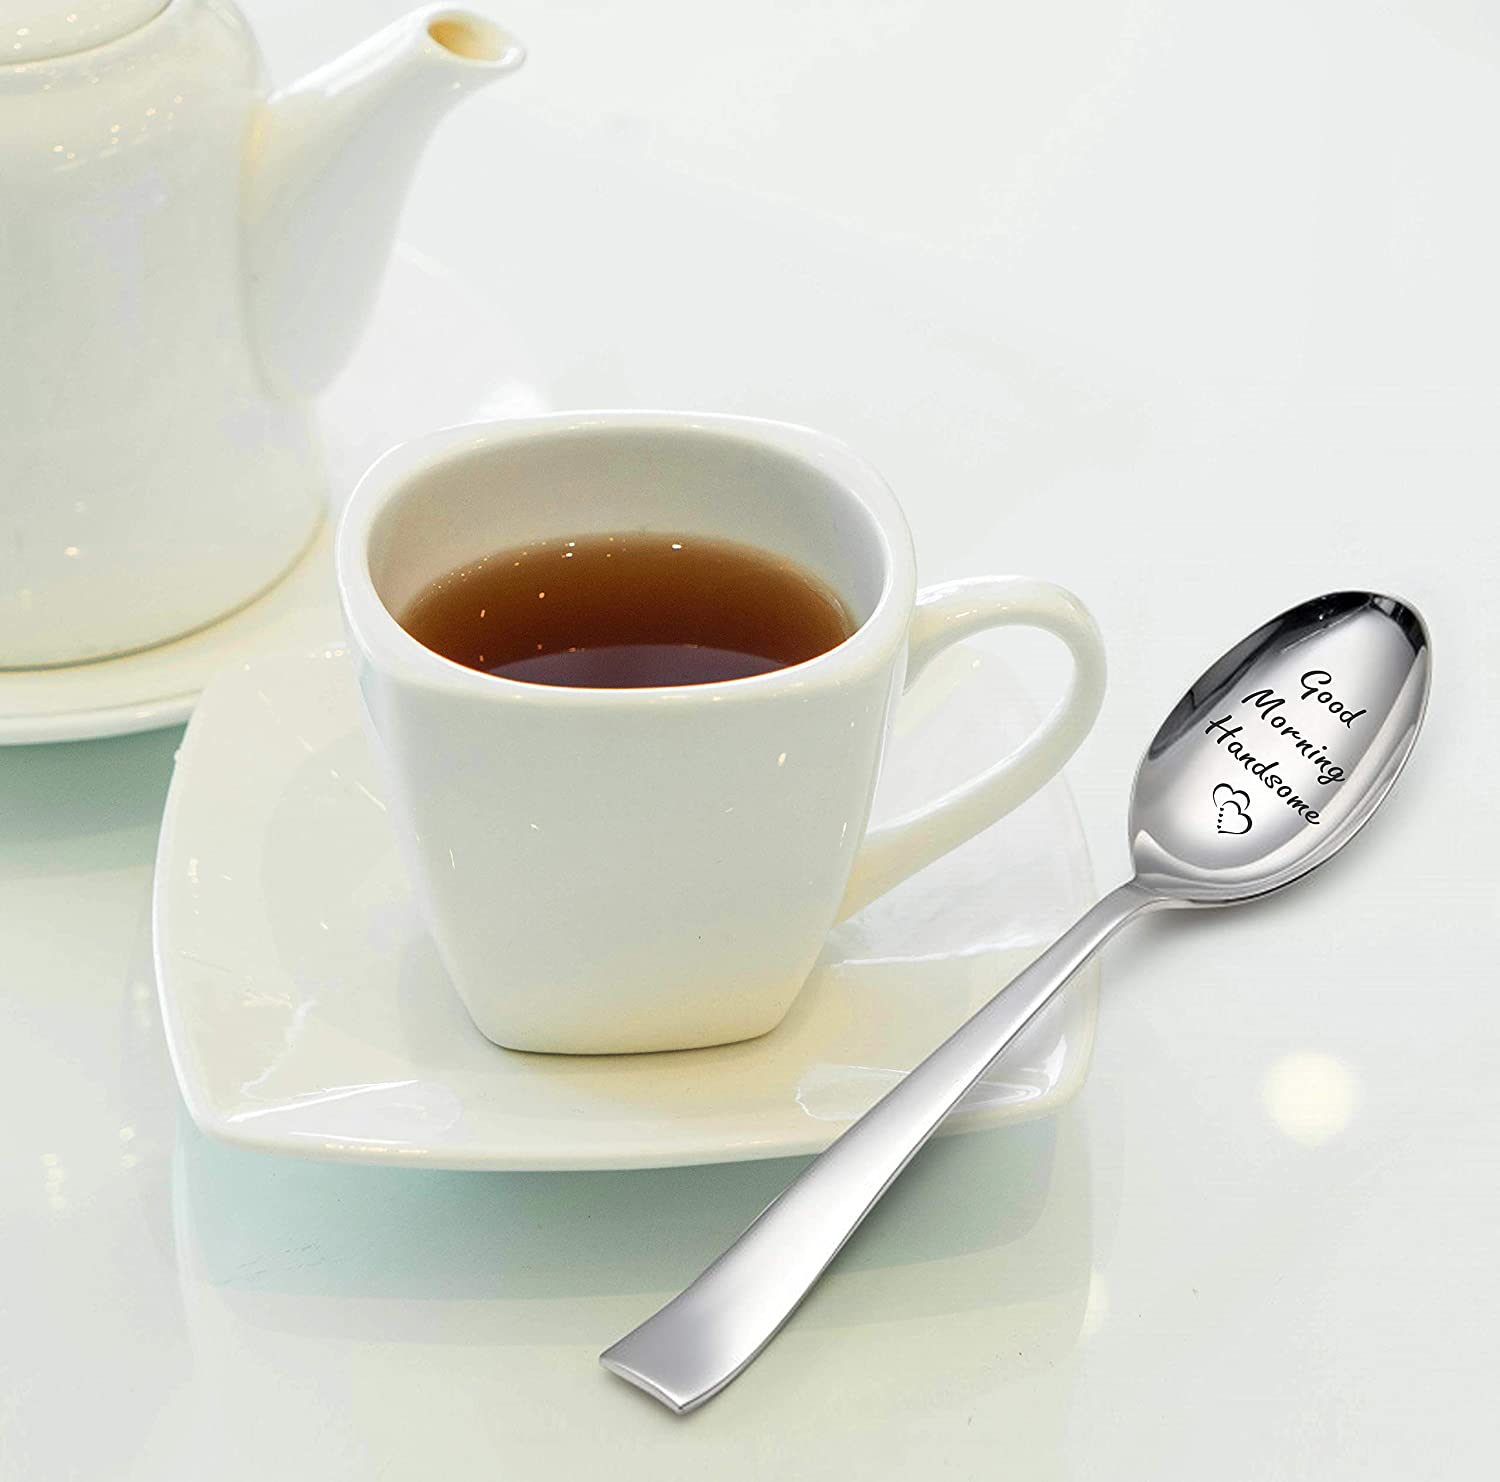 Cuill/ère cadeau S Good Morning Handsome-engraved Spoon-love Gifts-love Gifts for Girlfriend-love Gifts for Husband-love Gifts for Wife